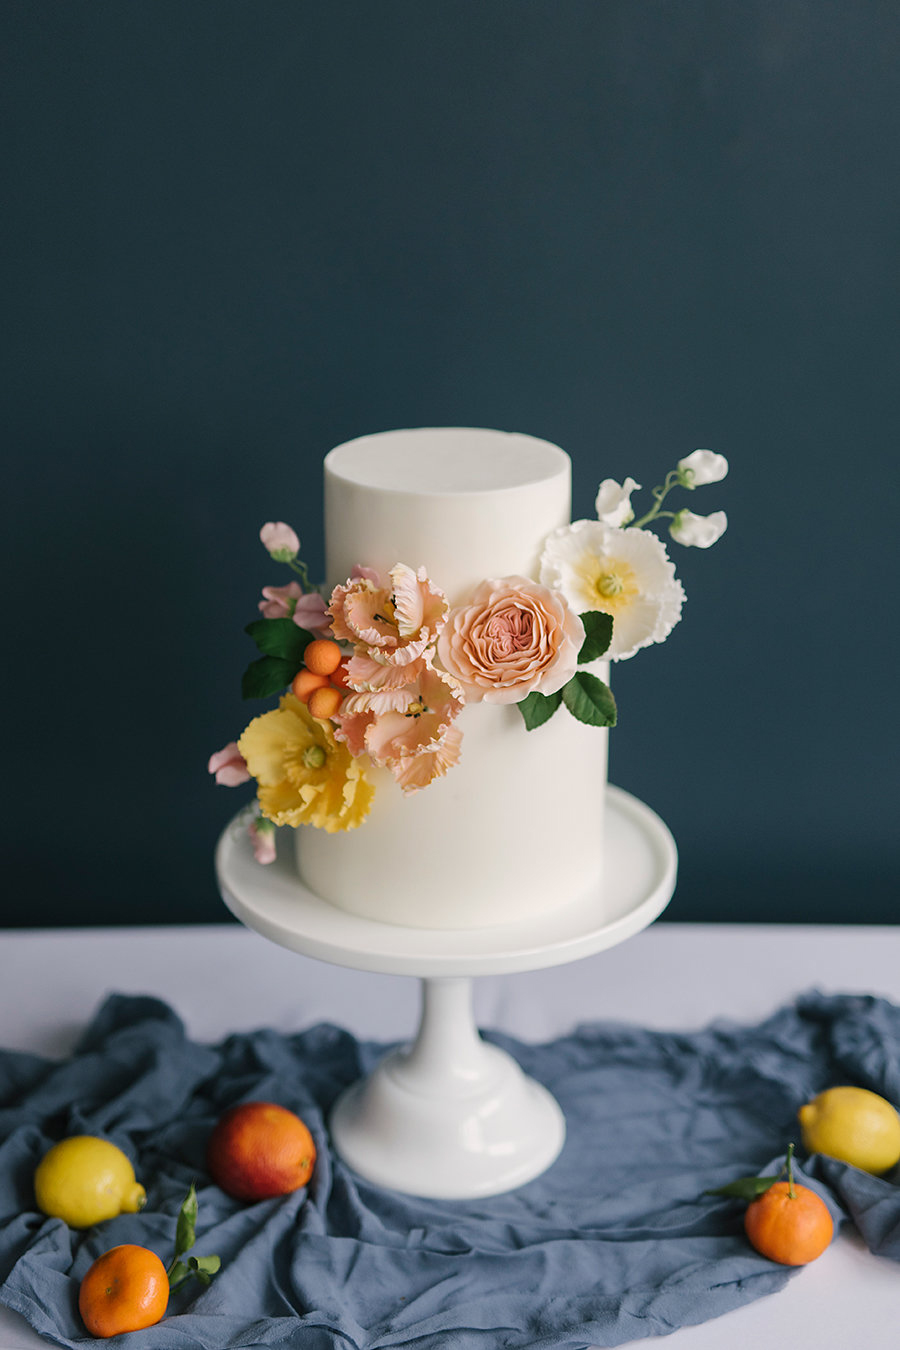 Summertime Citrus Wedding Inspiration - photo by Ashlee Brooke Photography http://ruffledblog.com/summertime-citrus-wedding-inspiration